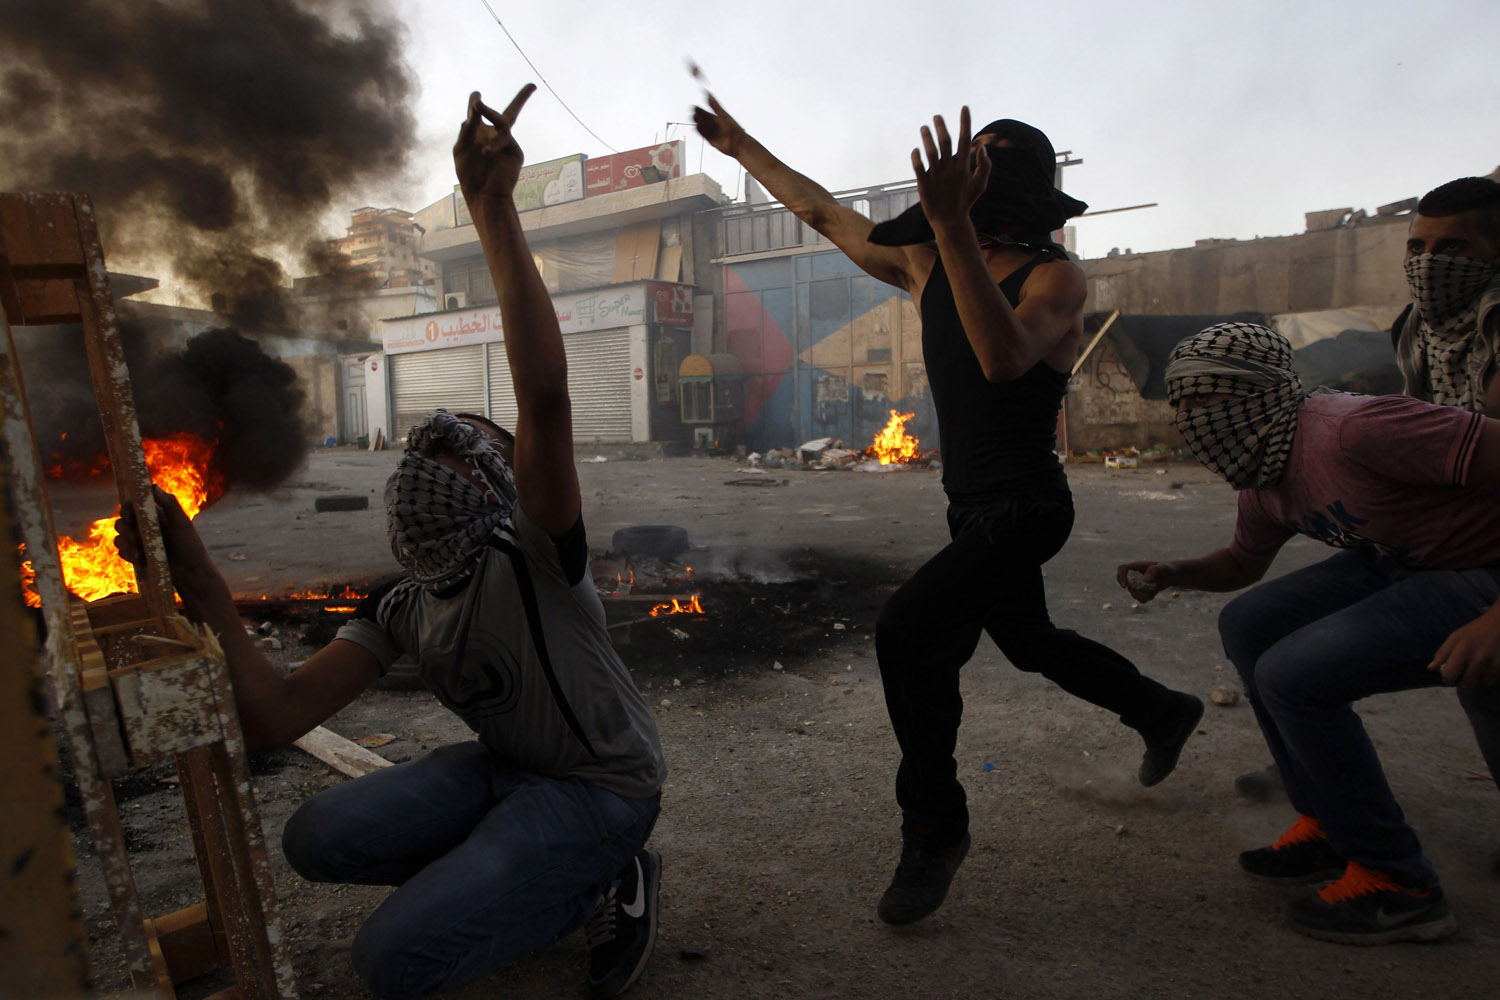 Sept. 18, 2012. Palestinian youths throw stones at Israeli border police (not seen)  in the Shuafat refugee camp in the West Bank near Jerusalem.